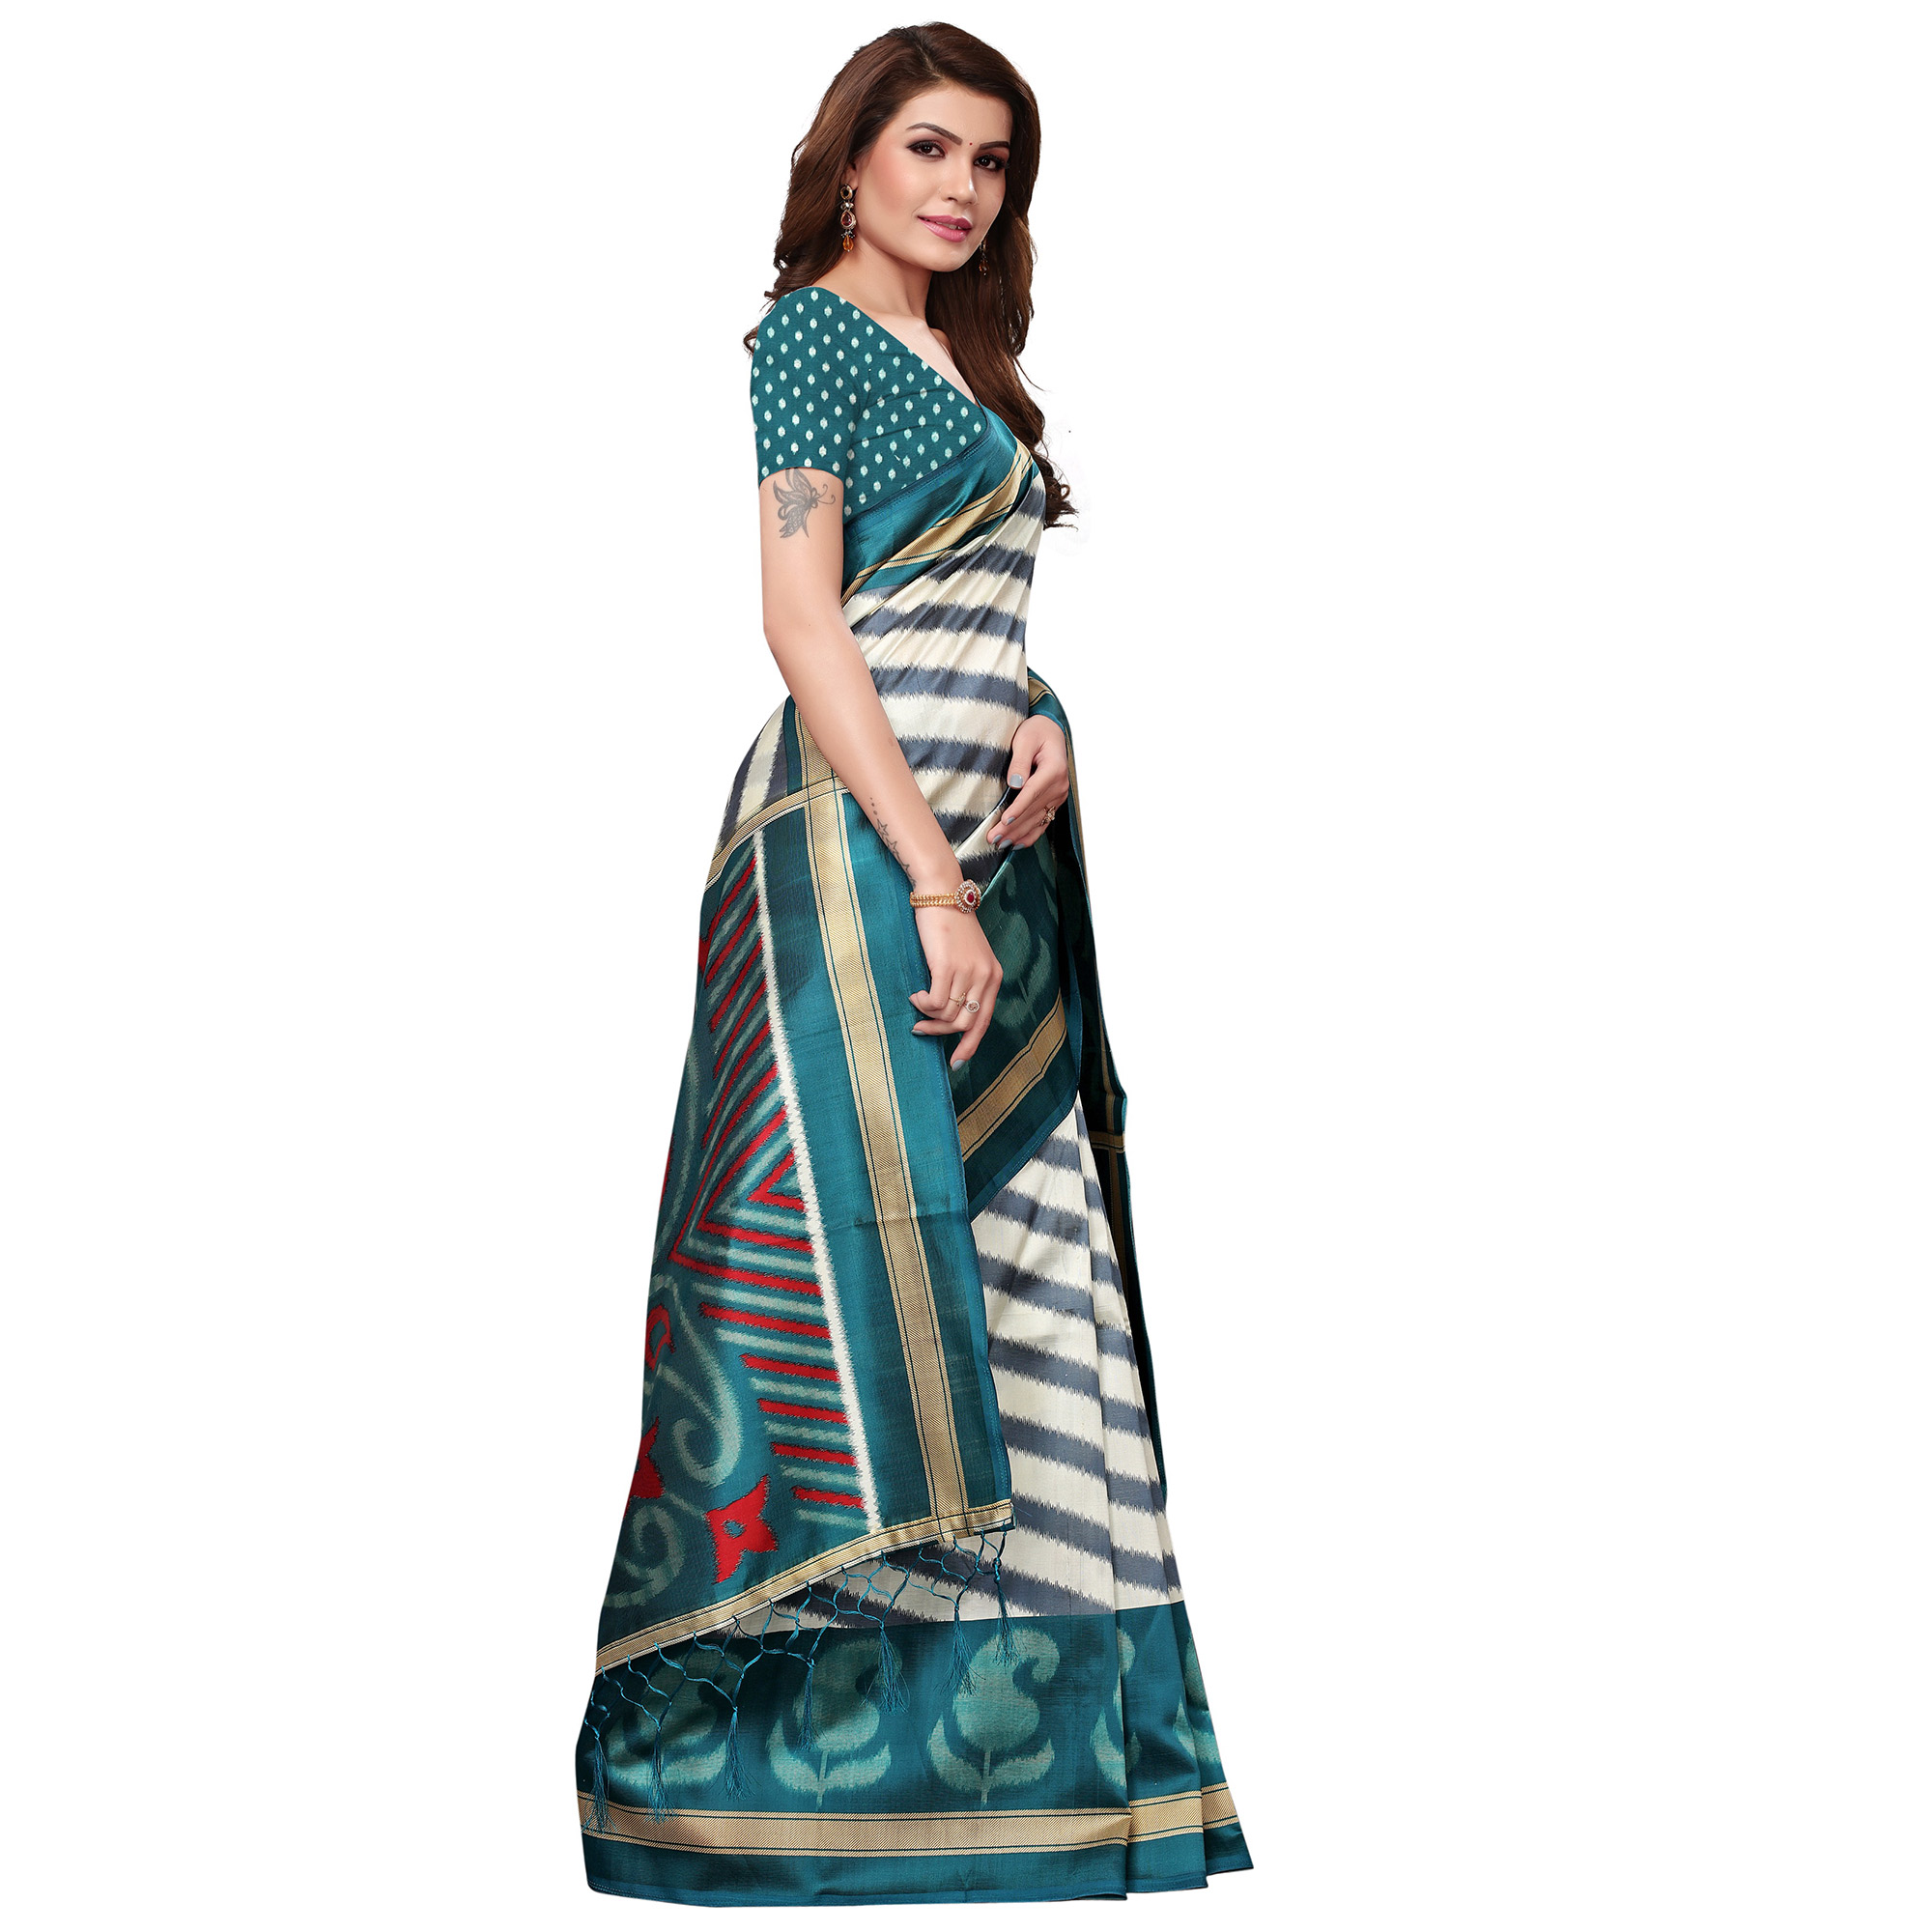 Entrancing Cream-Teal Blue Colored Festive Wear Mysore Silk Saree With Tassels